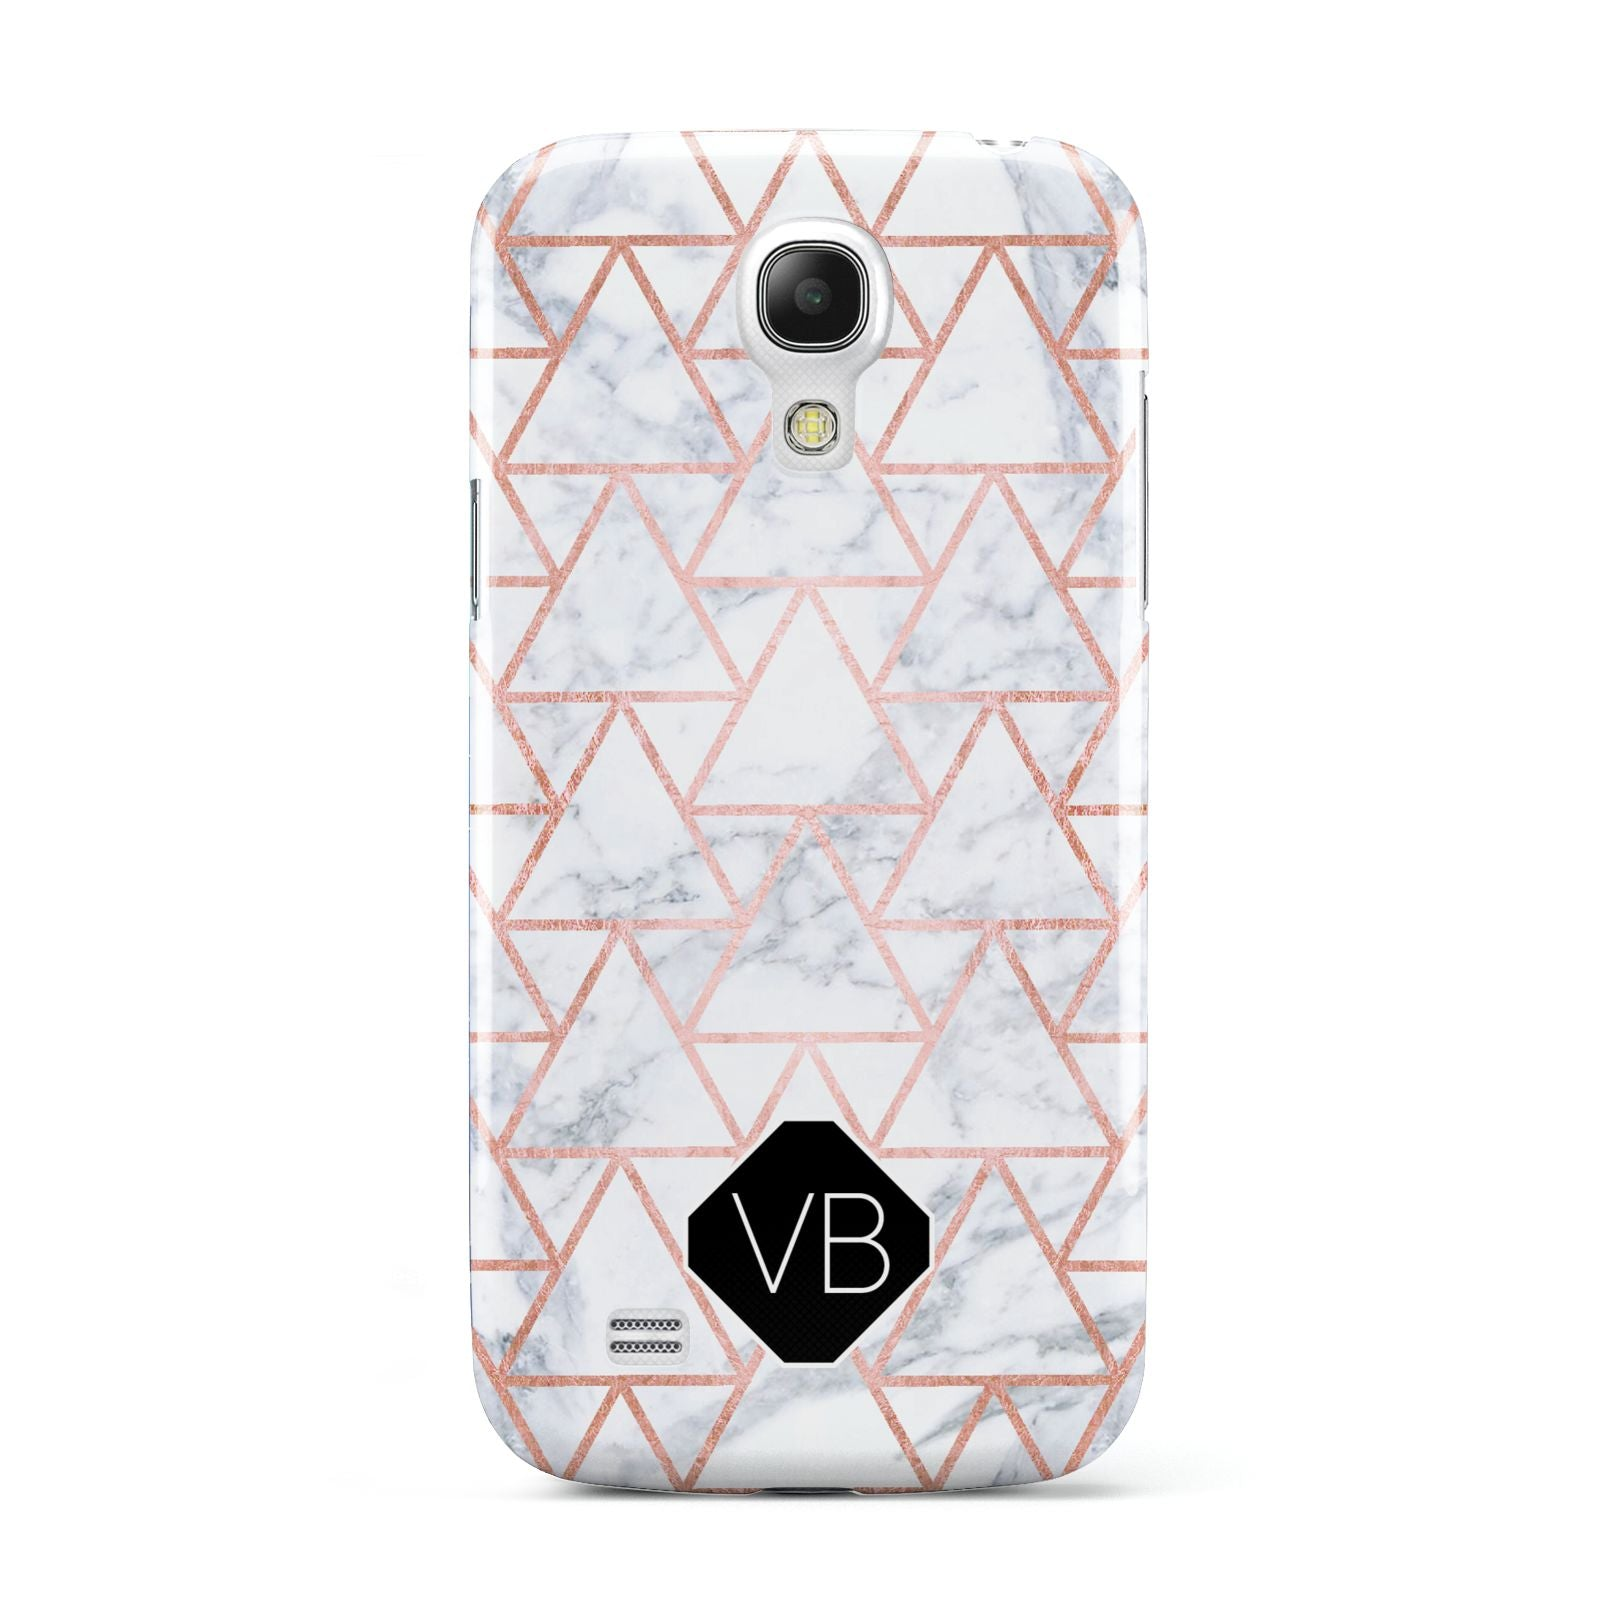 Personalised Rose Gold Grey Marble Hexagon Samsung Galaxy S4 Mini Case